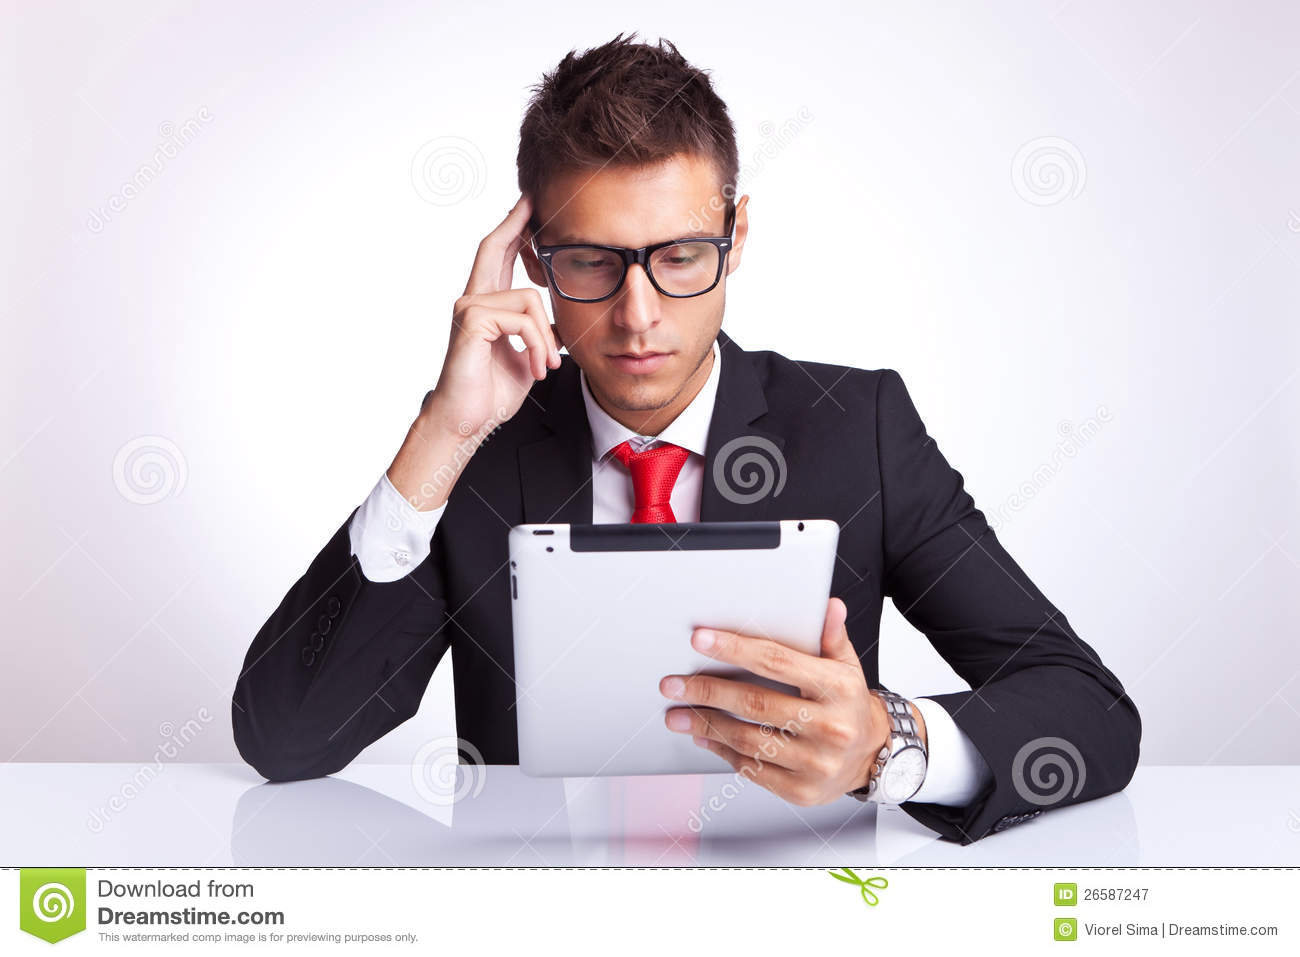 Man contemplating at what he is reading on pad